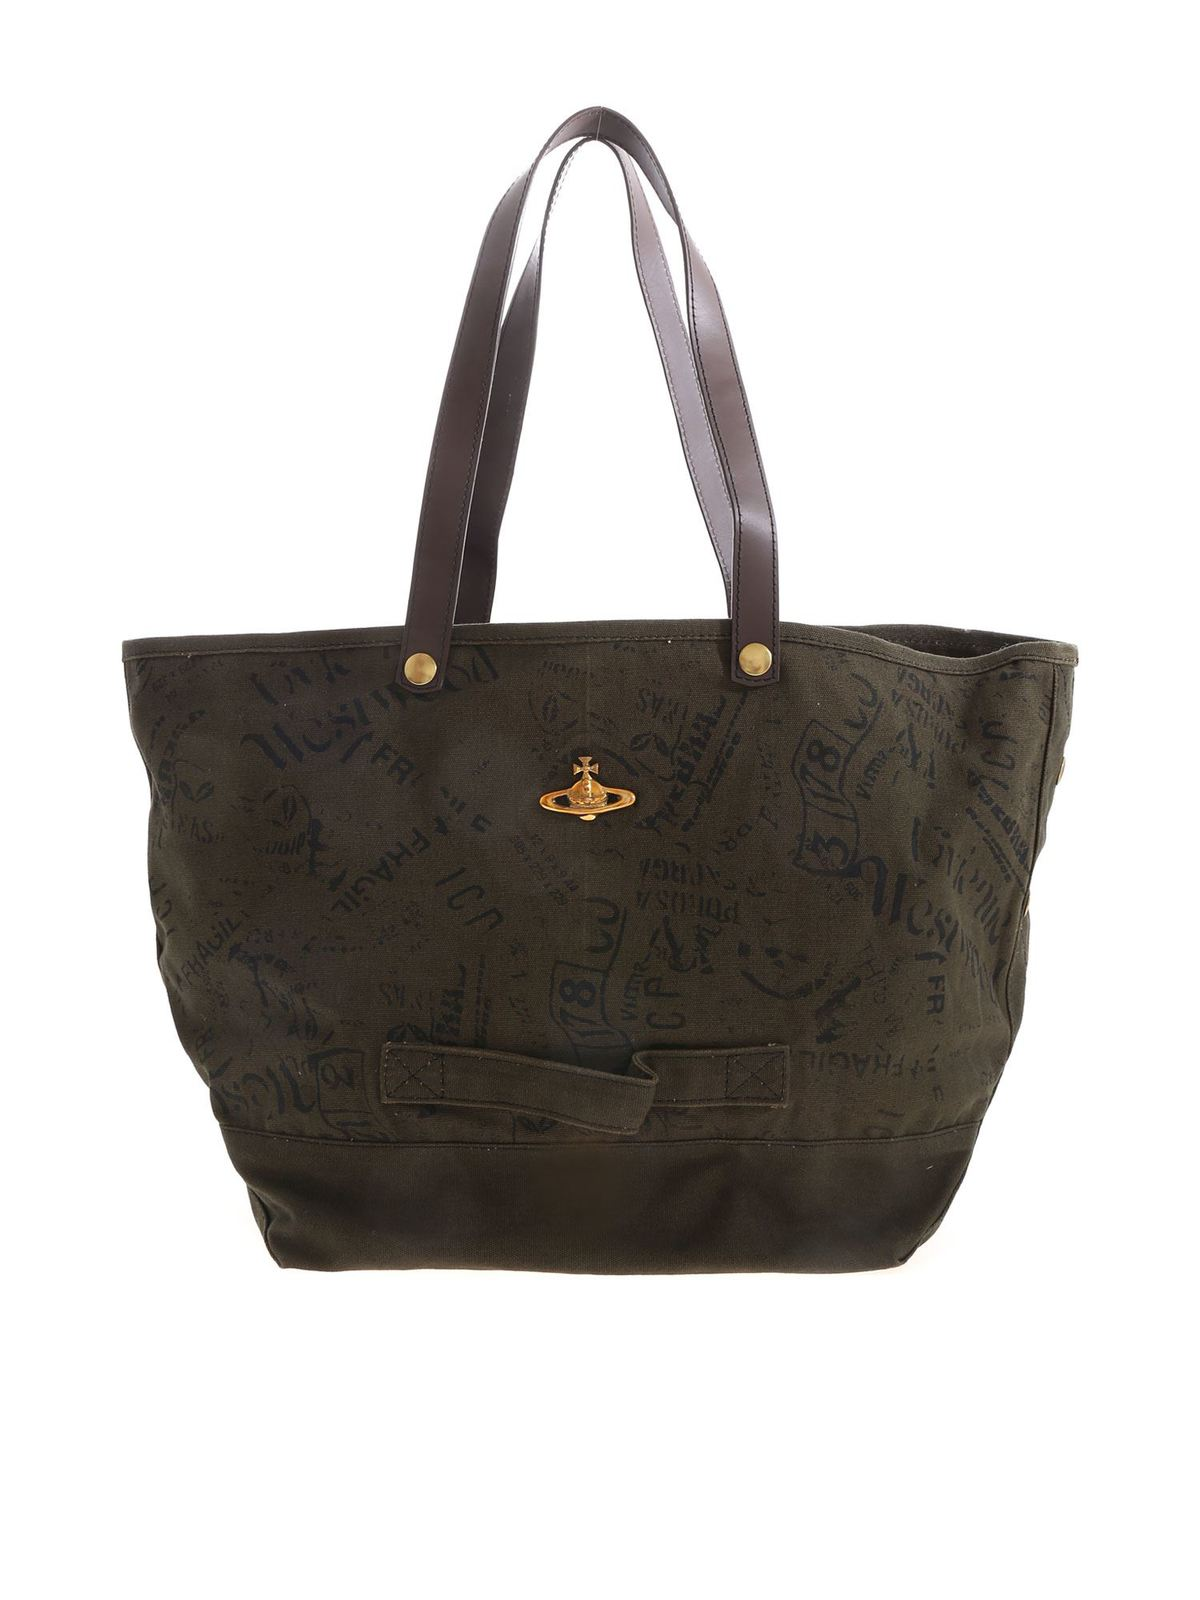 Vivienne Westwood CITY CANVAS SHOULDER BAG IN MILITARY GREEN